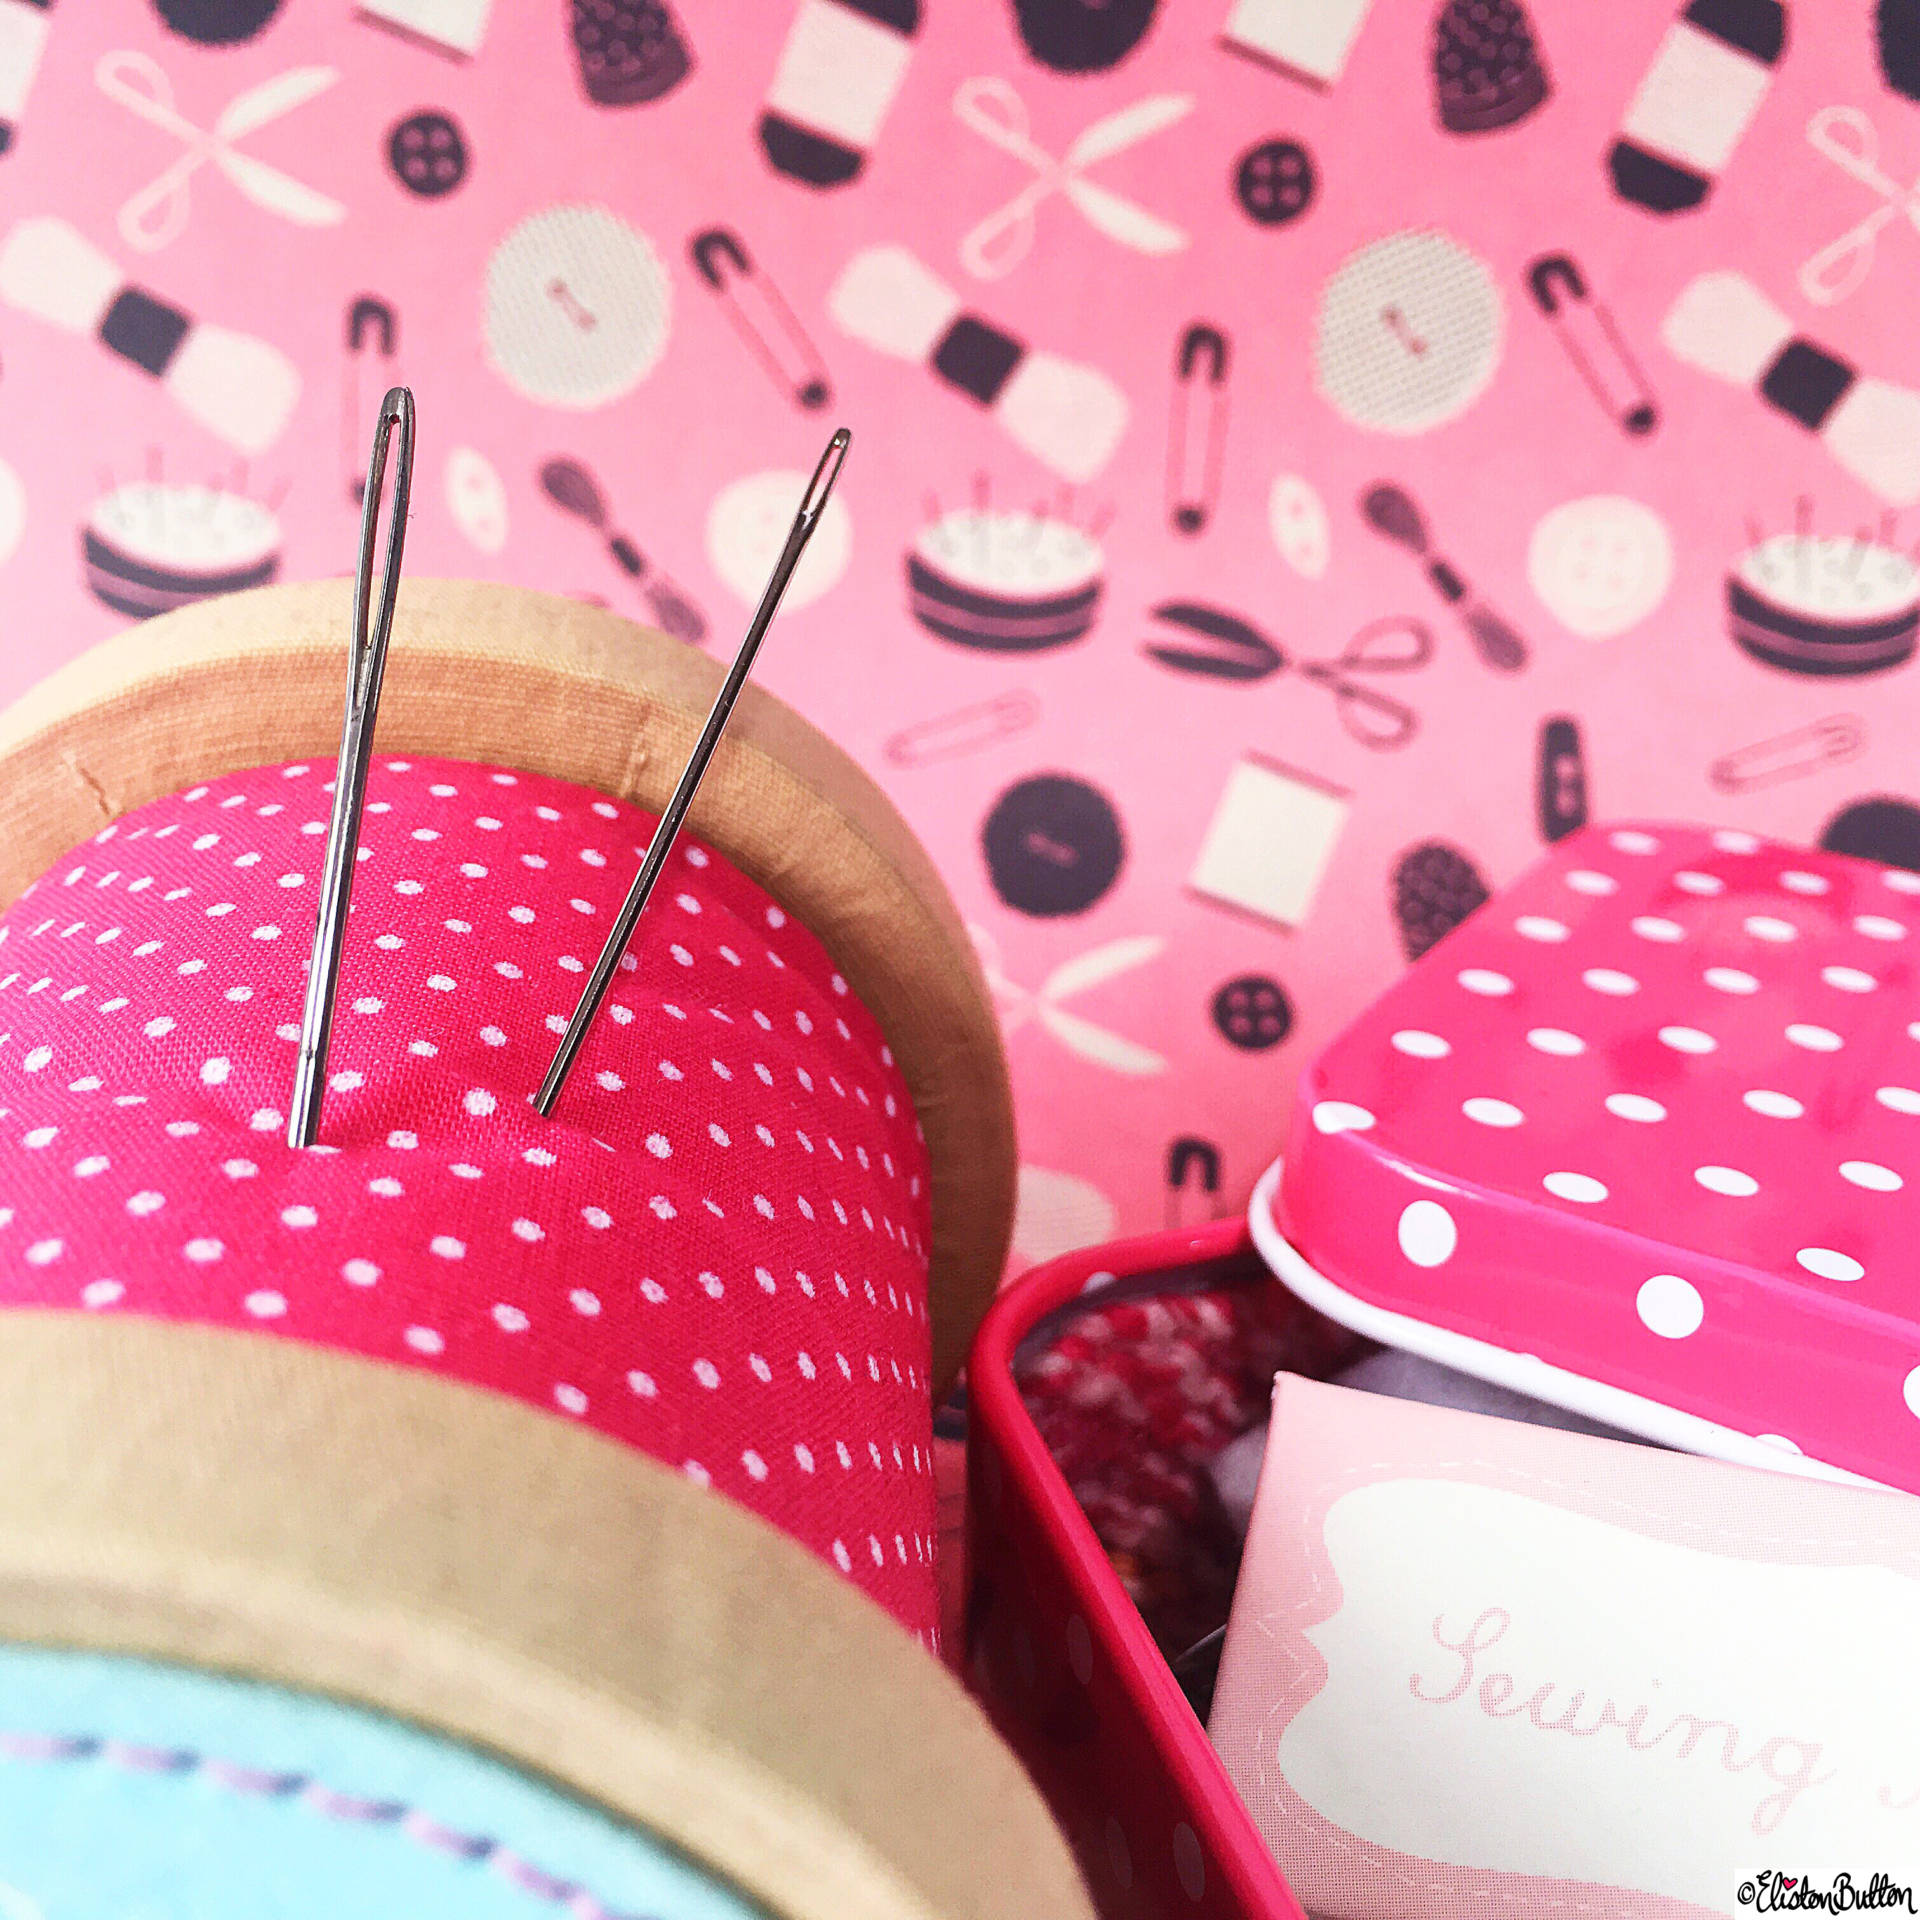 Day 14 - Eye - Eye of a Needle and Pink Sewing Things - Photo-a-Day – May 2016 at www.elistonbutton.com - Eliston Button - That Crafty Kid – Art, Design, Craft & Adventure.